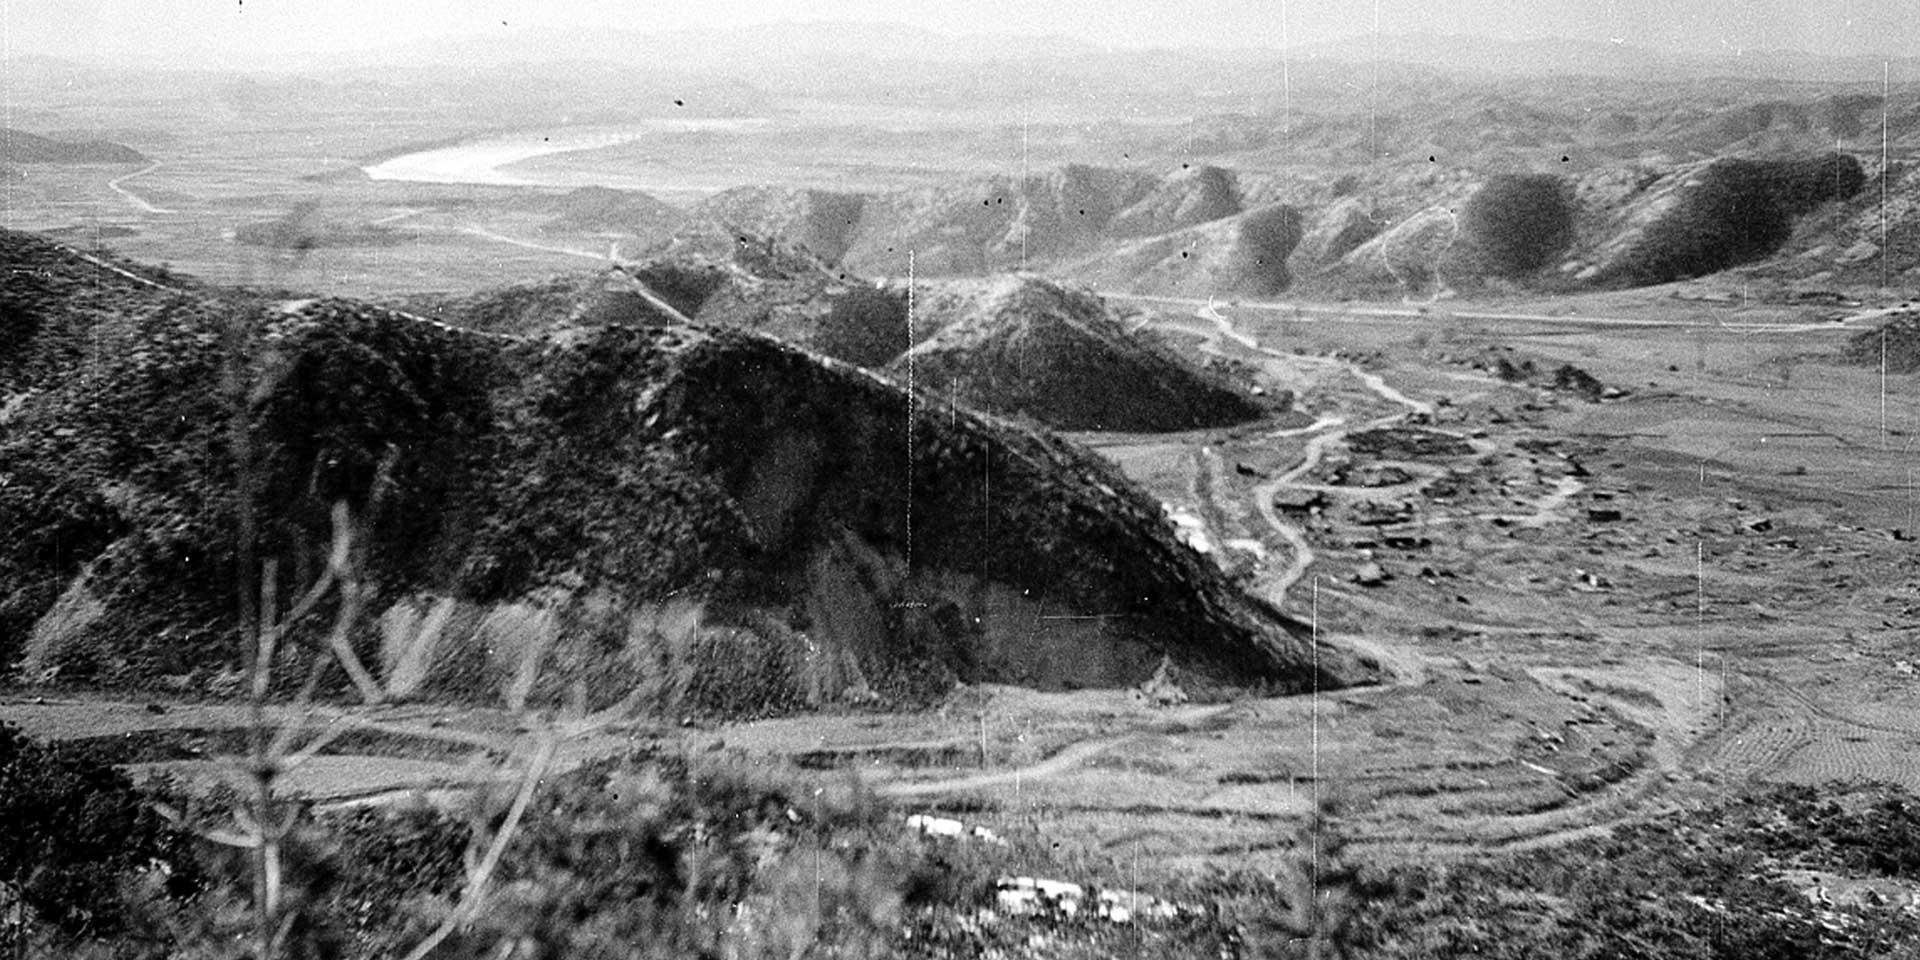 View looking north west over the River Imjin, 1951